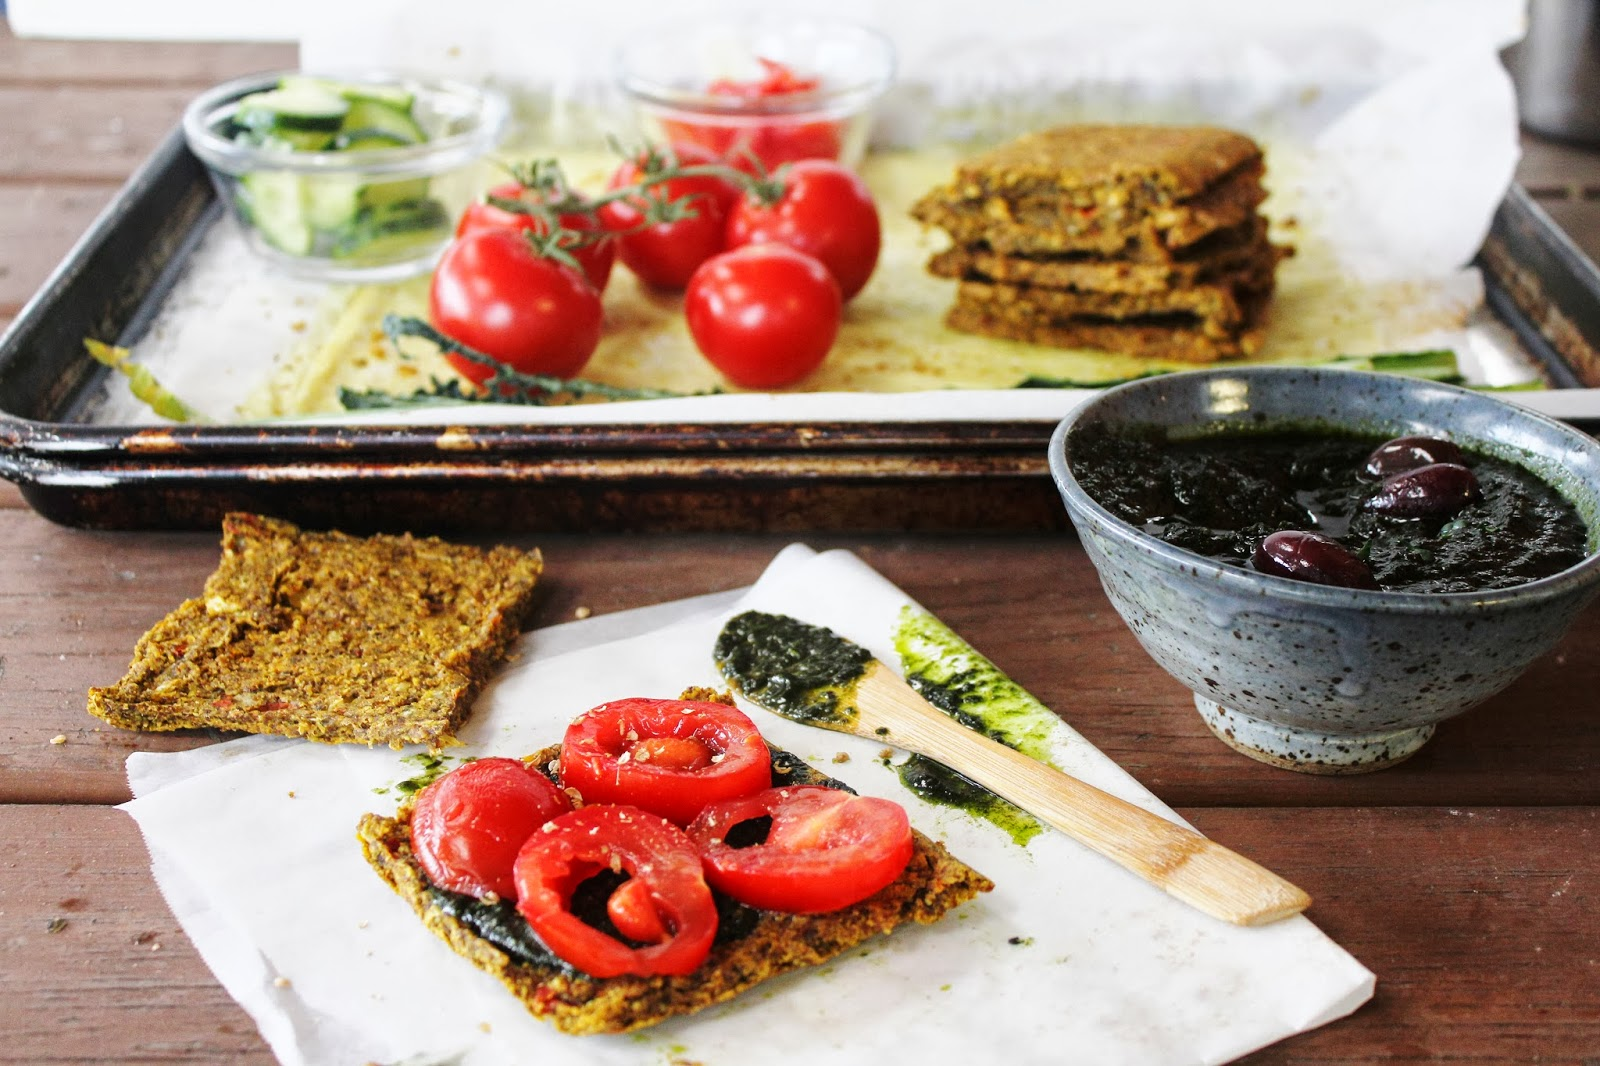 TOMATO CUCUMBER SANDWICH on ONION & CORN BREAD with OLIVE & KALE TAPENADE